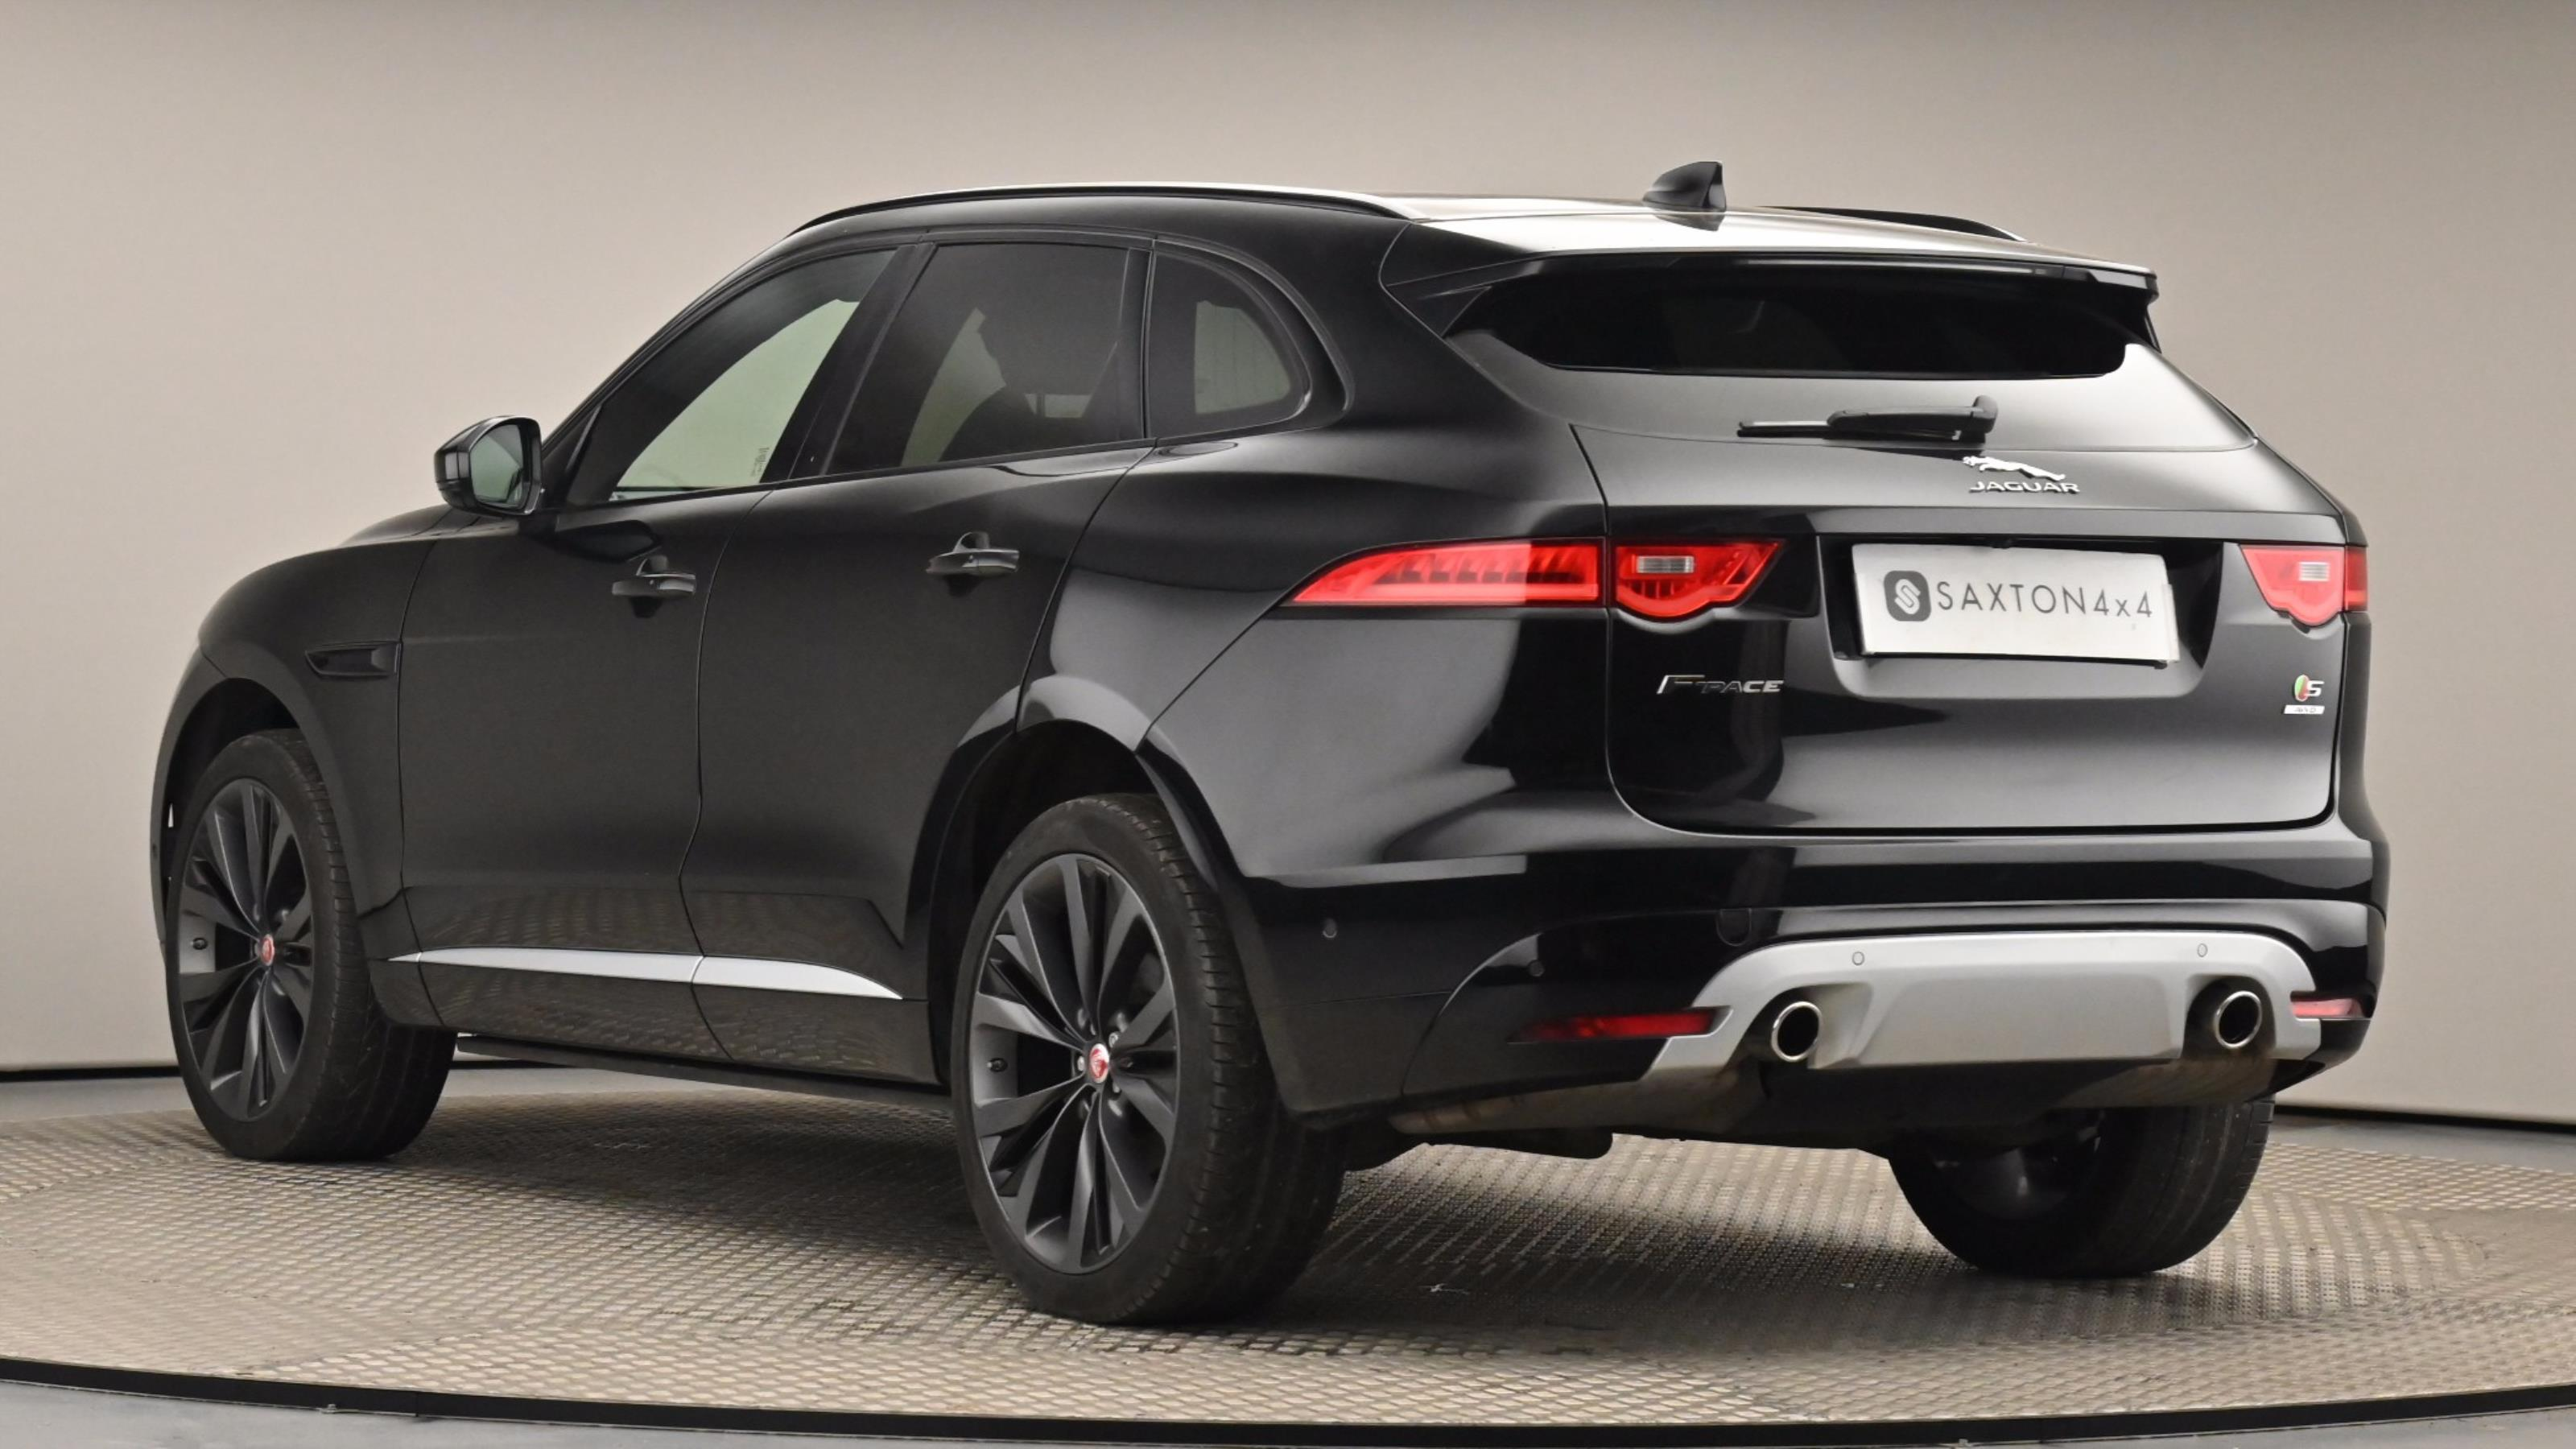 Used 2016 Jaguar F-PACE 3.0d V6 1st Edition 5dr Auto AWD Black at Saxton4x4